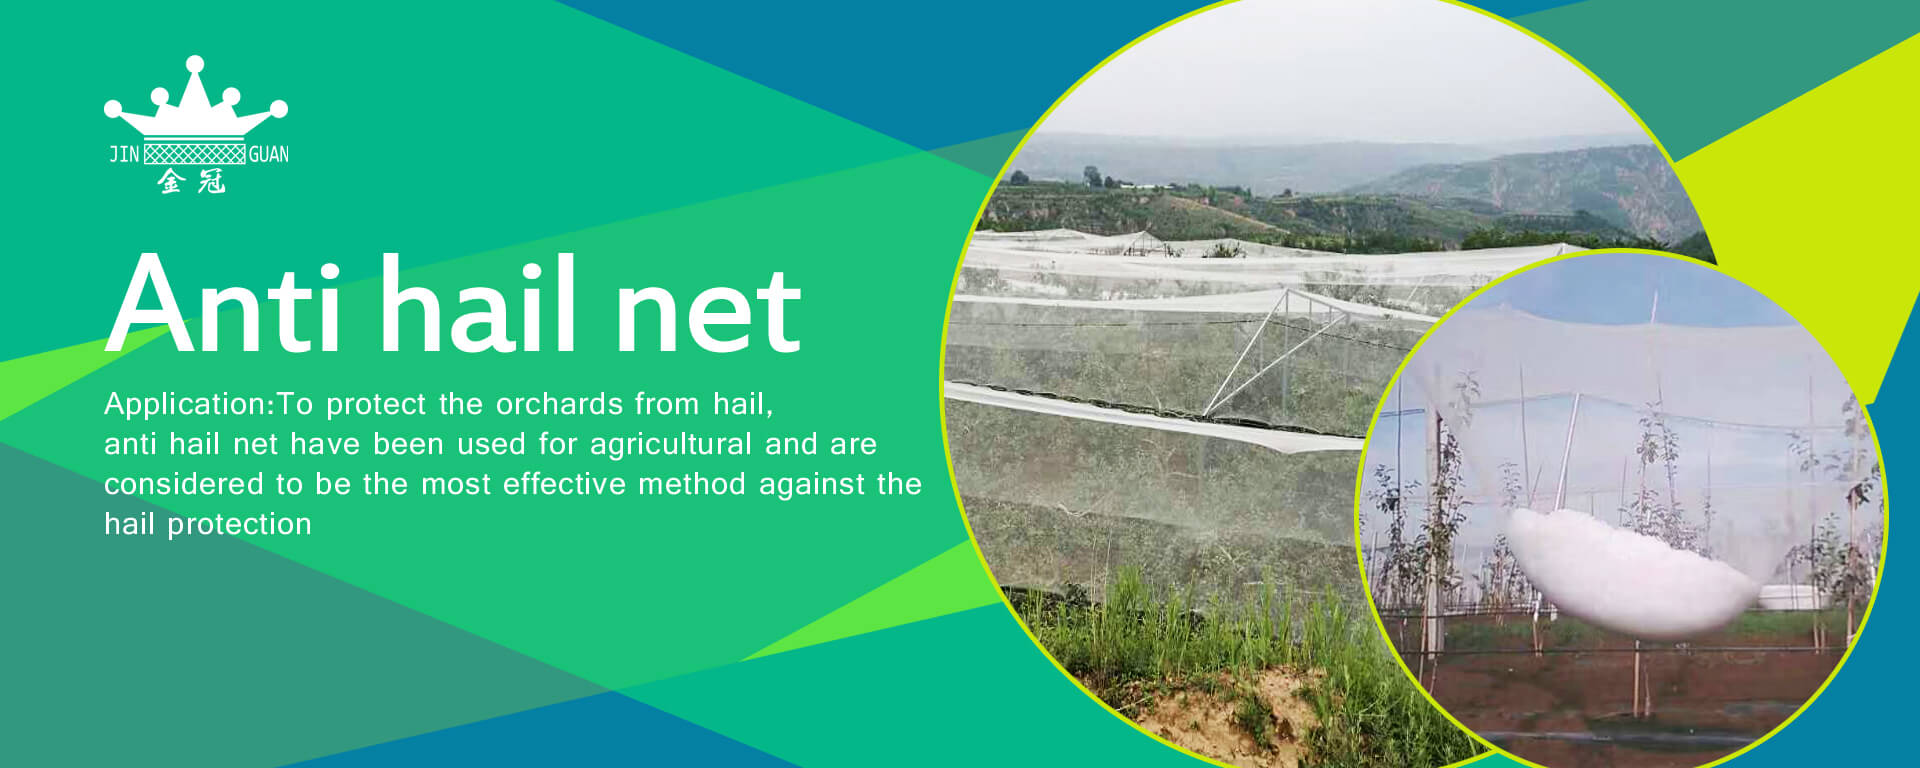 Anti Hail Net